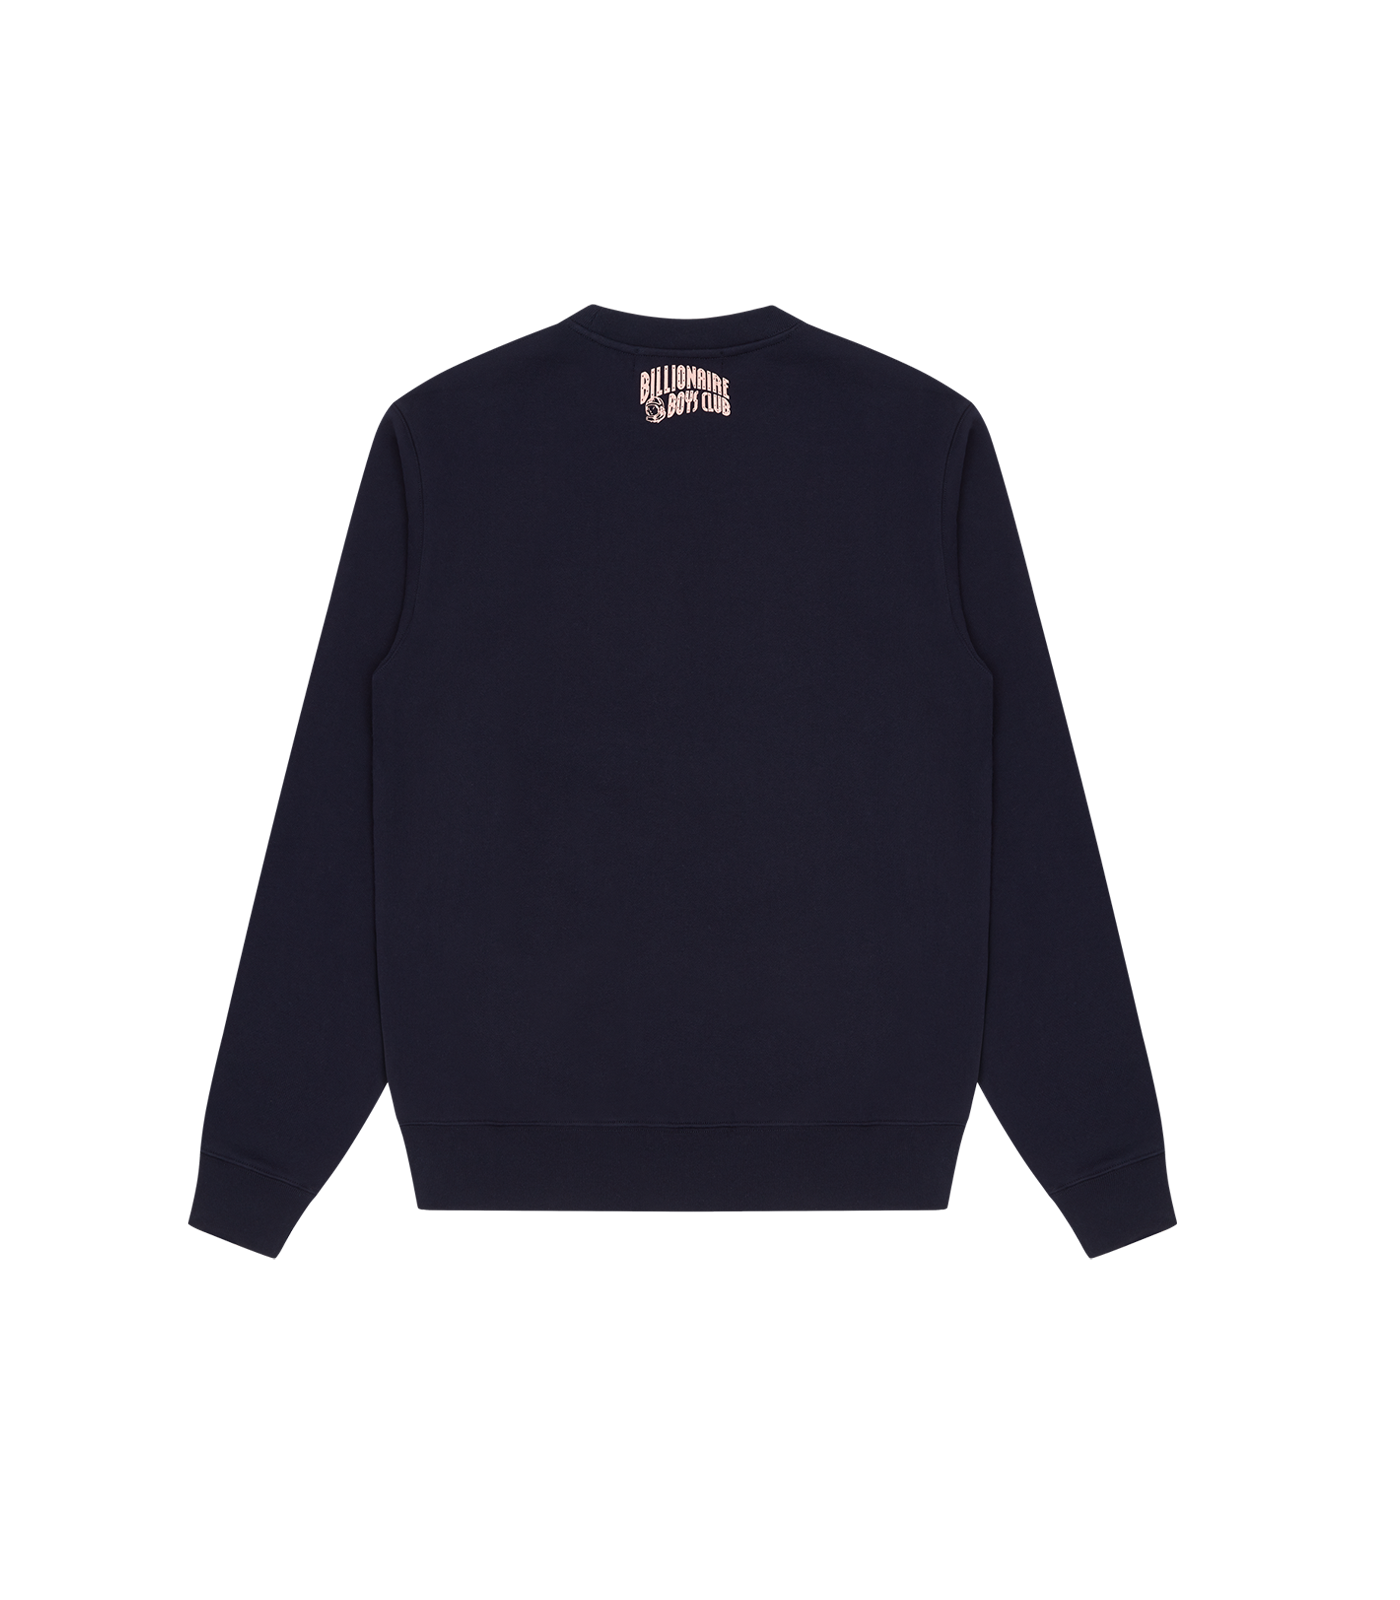 CHAINSTITCH ASTRO LOGO CREWNECK - NAVY